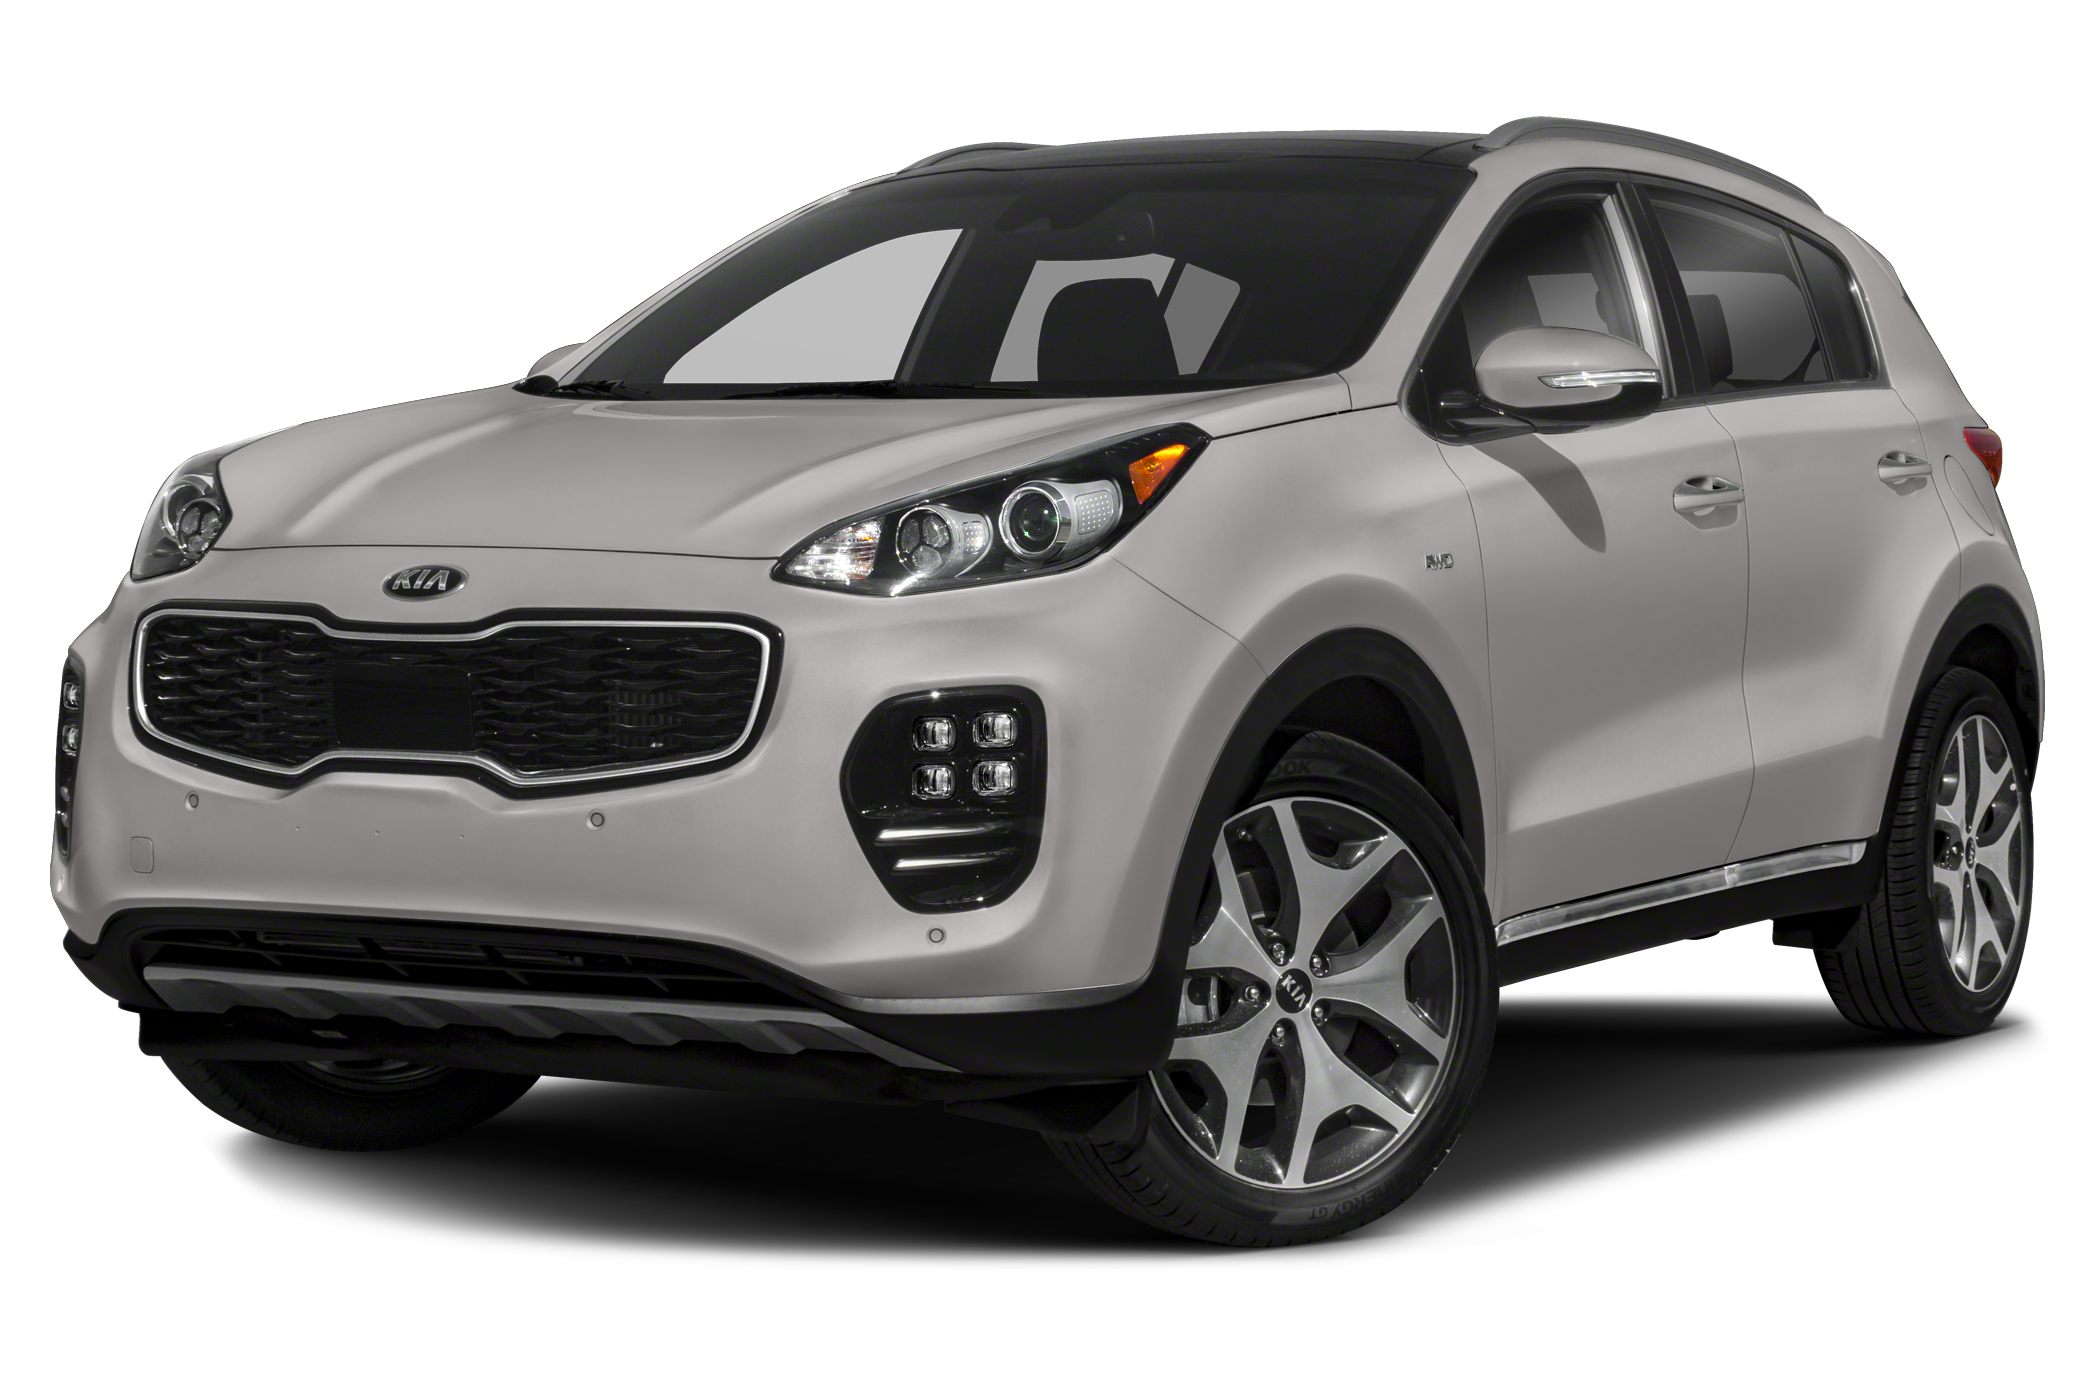 2017 Kia Sportage SX Turbo AWD Turbo Dual Panoramic Sunroofs NavigationHeated ventilated Leathe